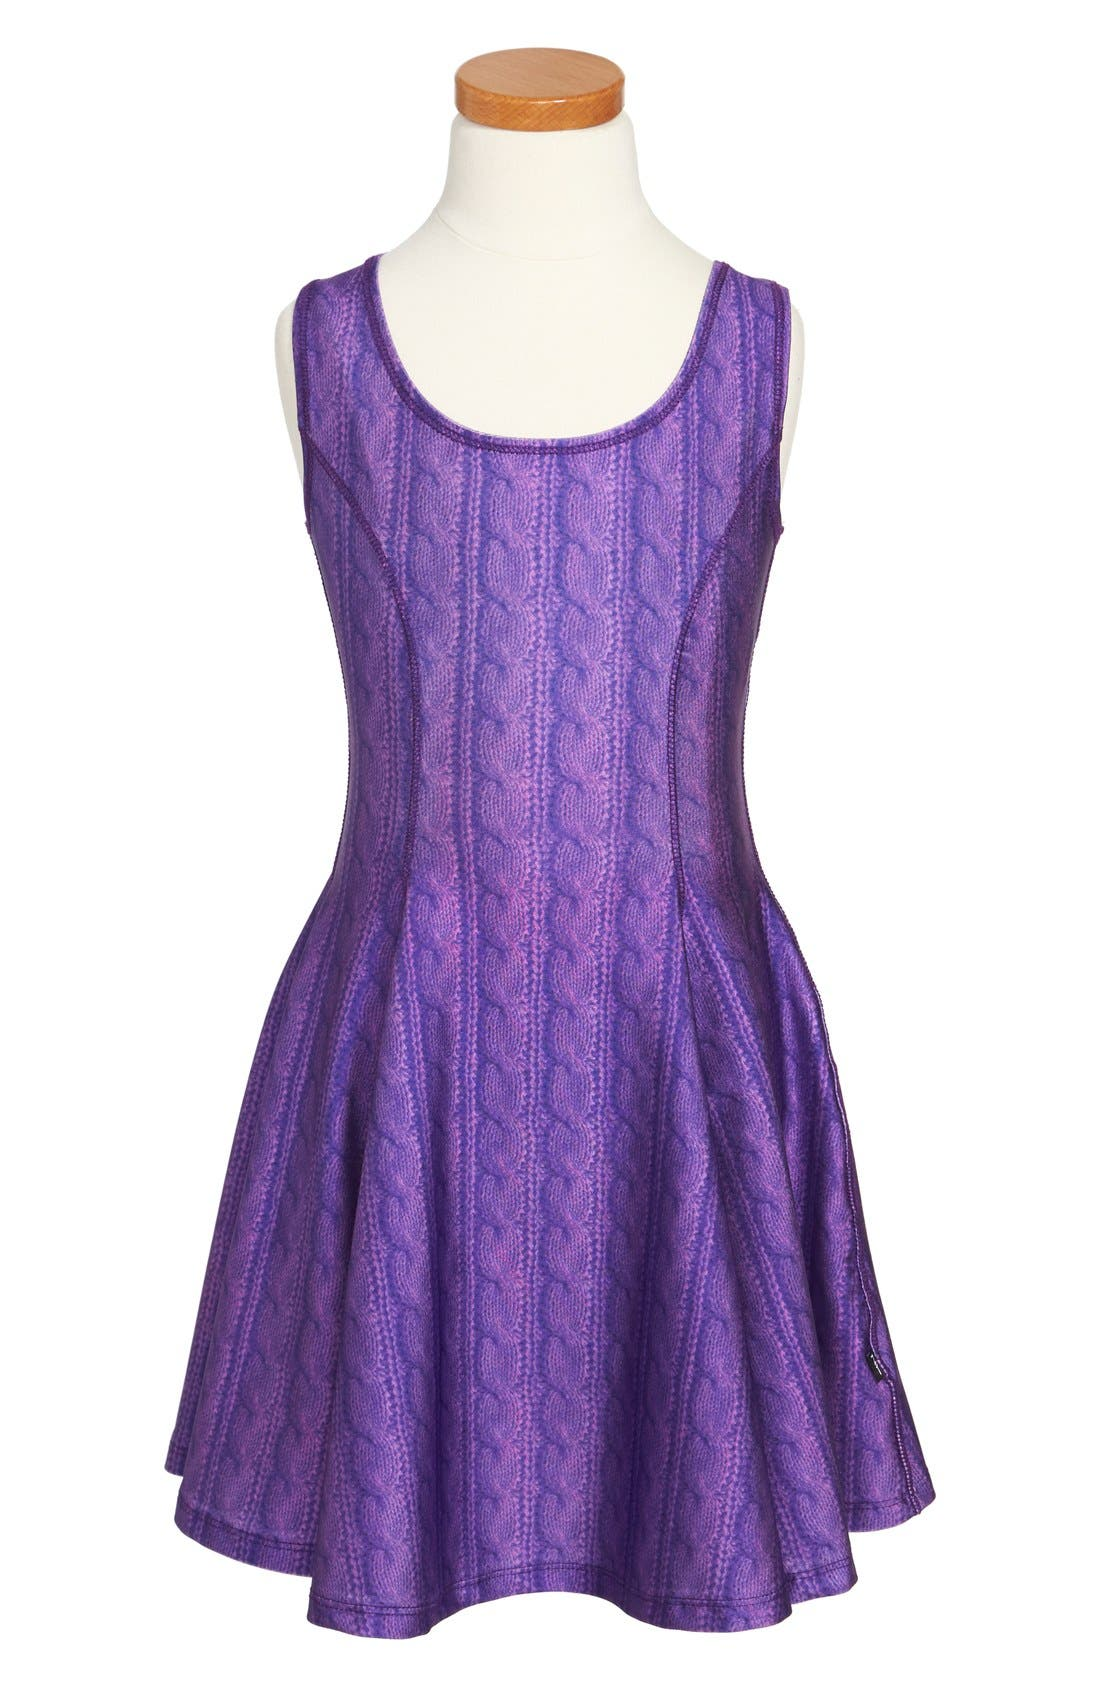 Main Image - Terez Cable Knit Dress (Big Girls)